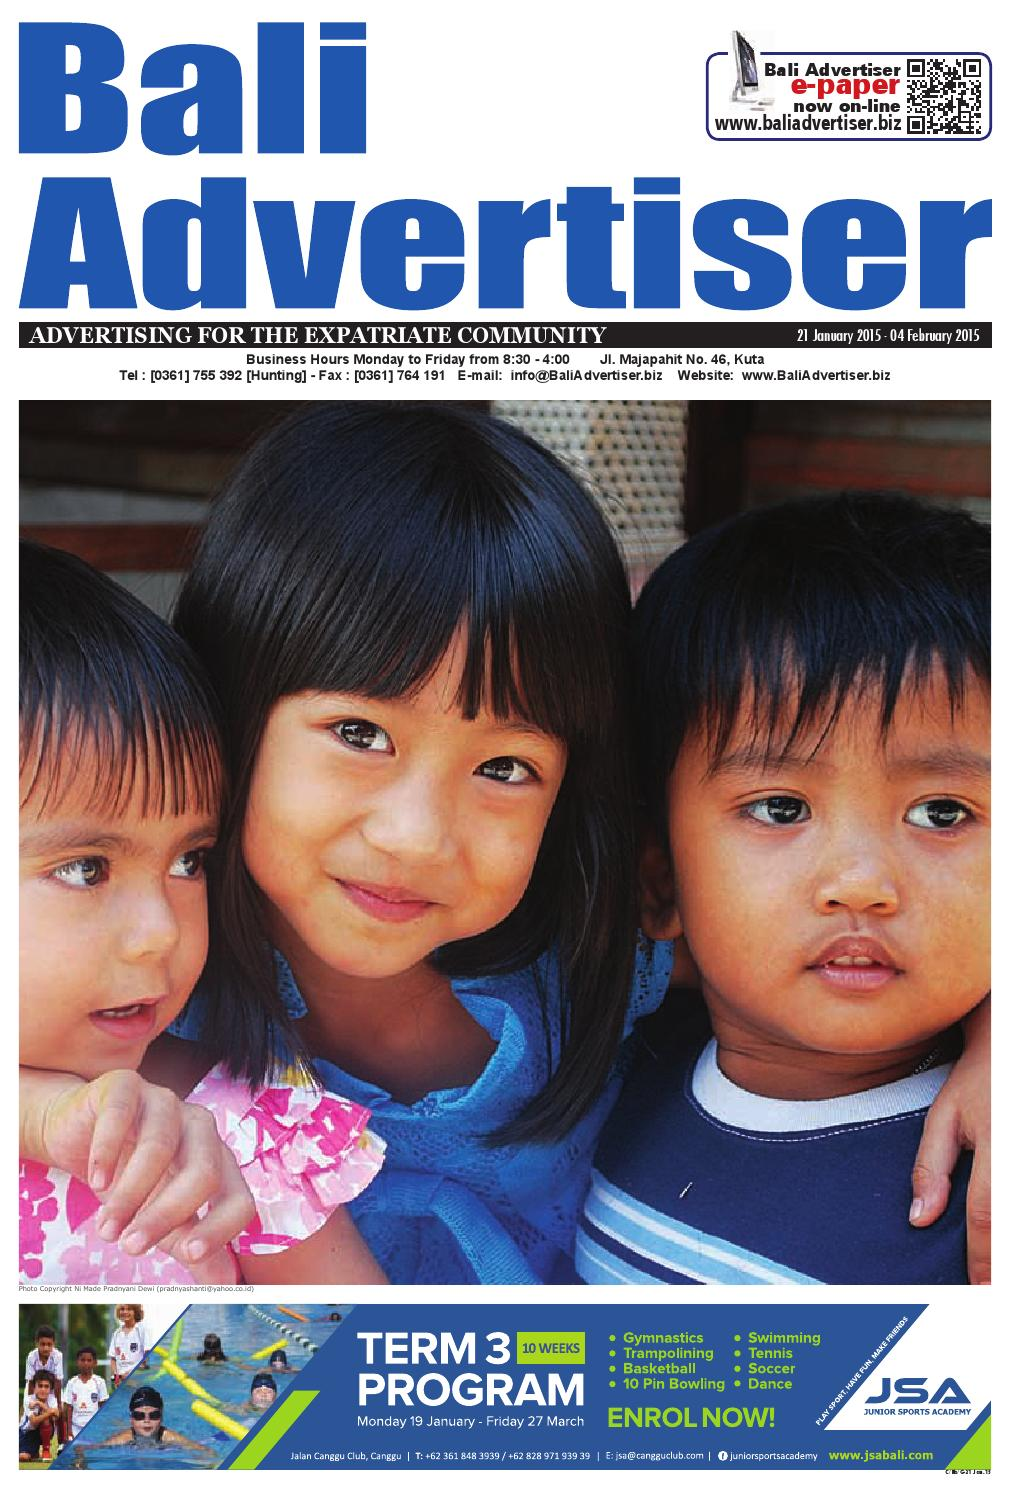 Ba 21 January 2015 By Bali Advertiser Issuu Baruu Map Voucher 25juta Bonus 50k